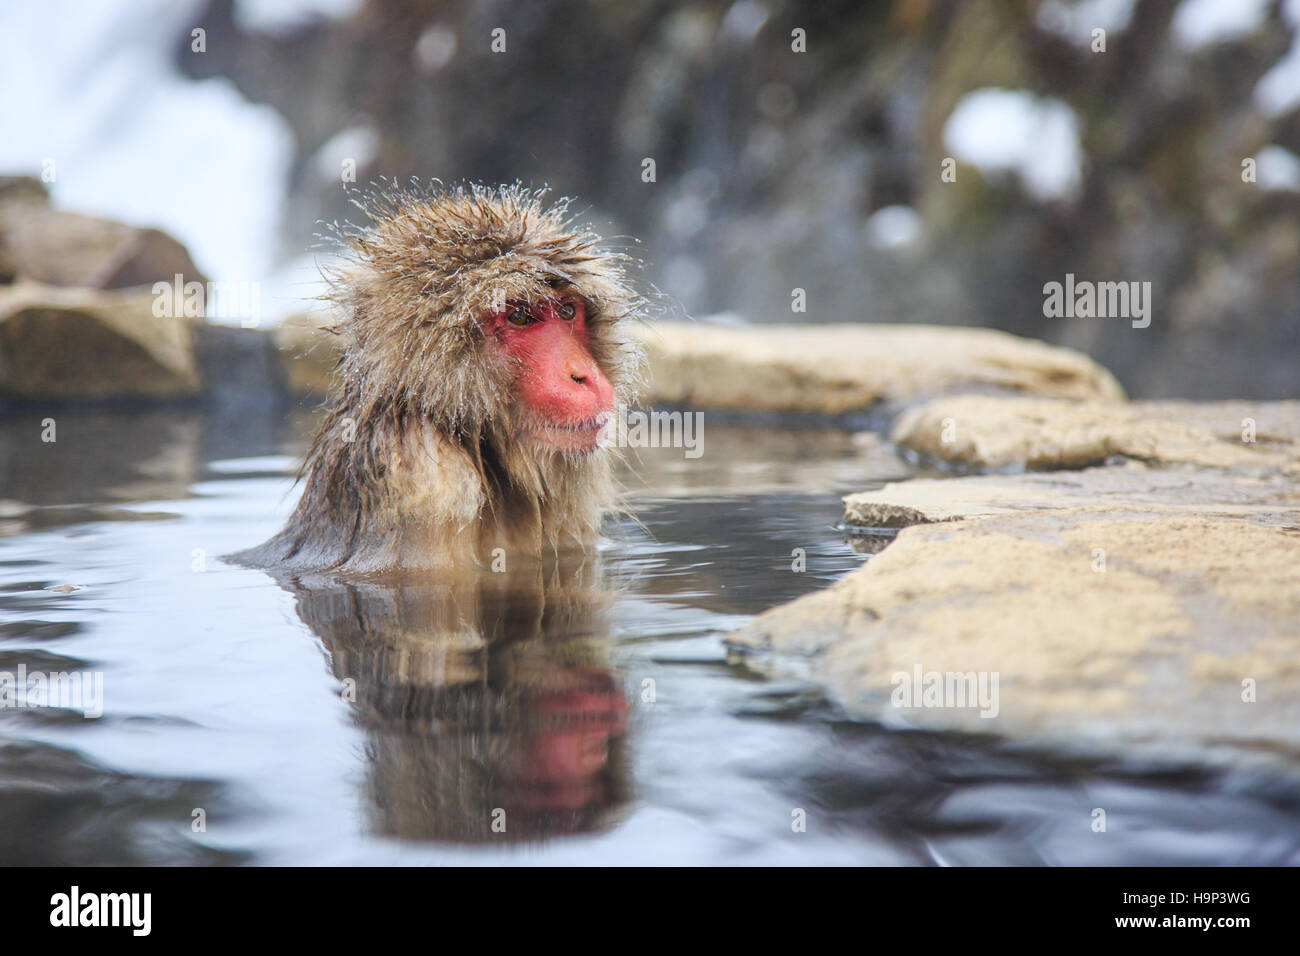 Snow monkey at a natural onsen (hot spring), located in Jigokudani Park, Yudanaka. Nagano Japan. - Stock Image